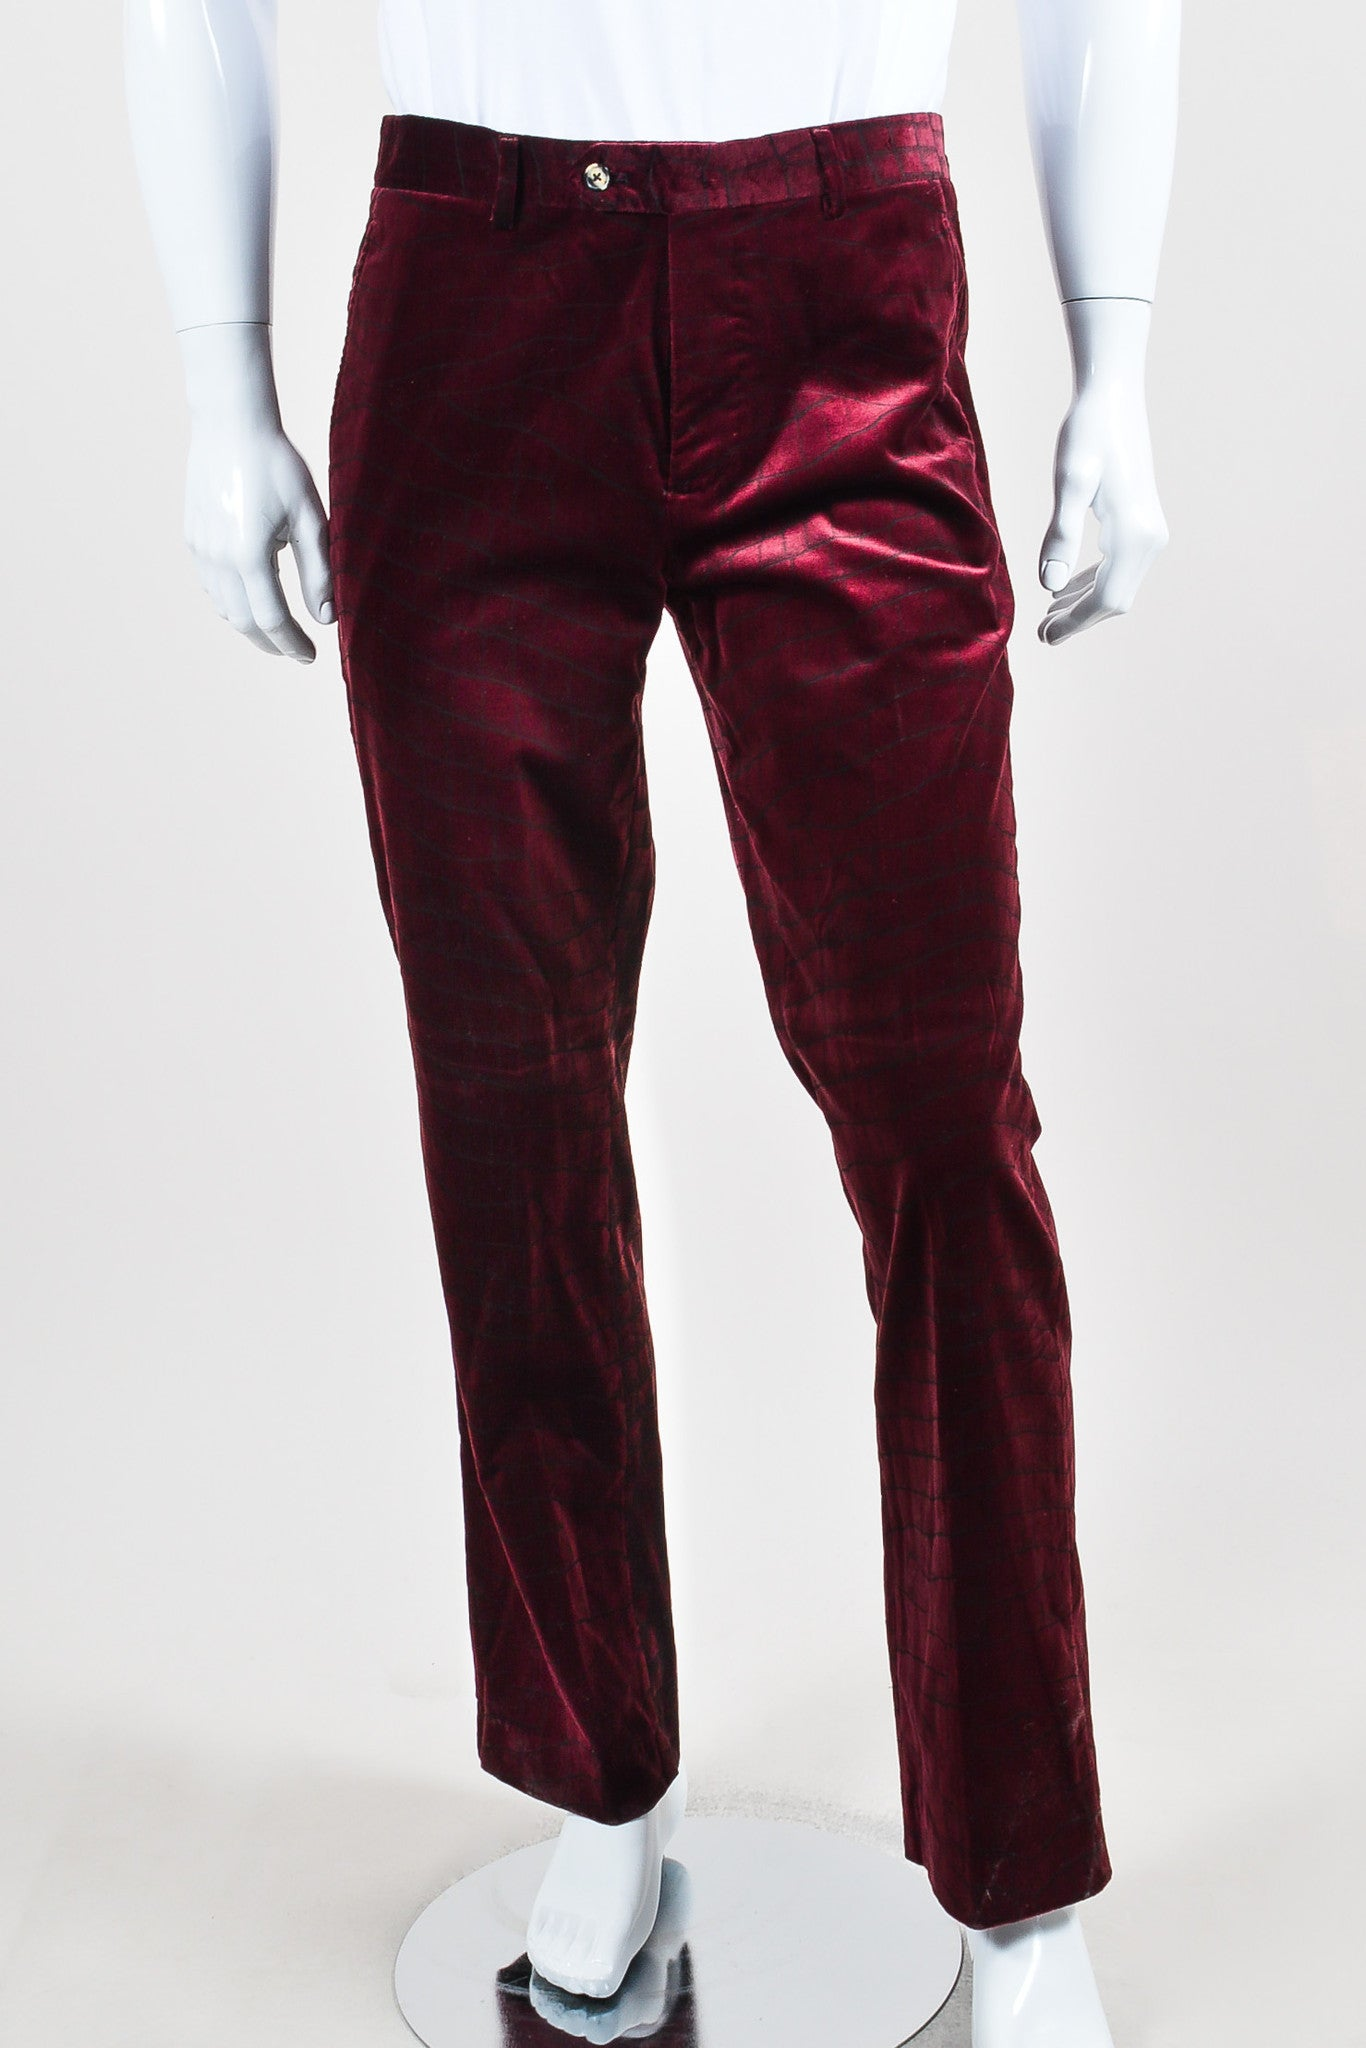 MEN'S Maroon Roberto Cavalli Velvet Alligator Trousers Front